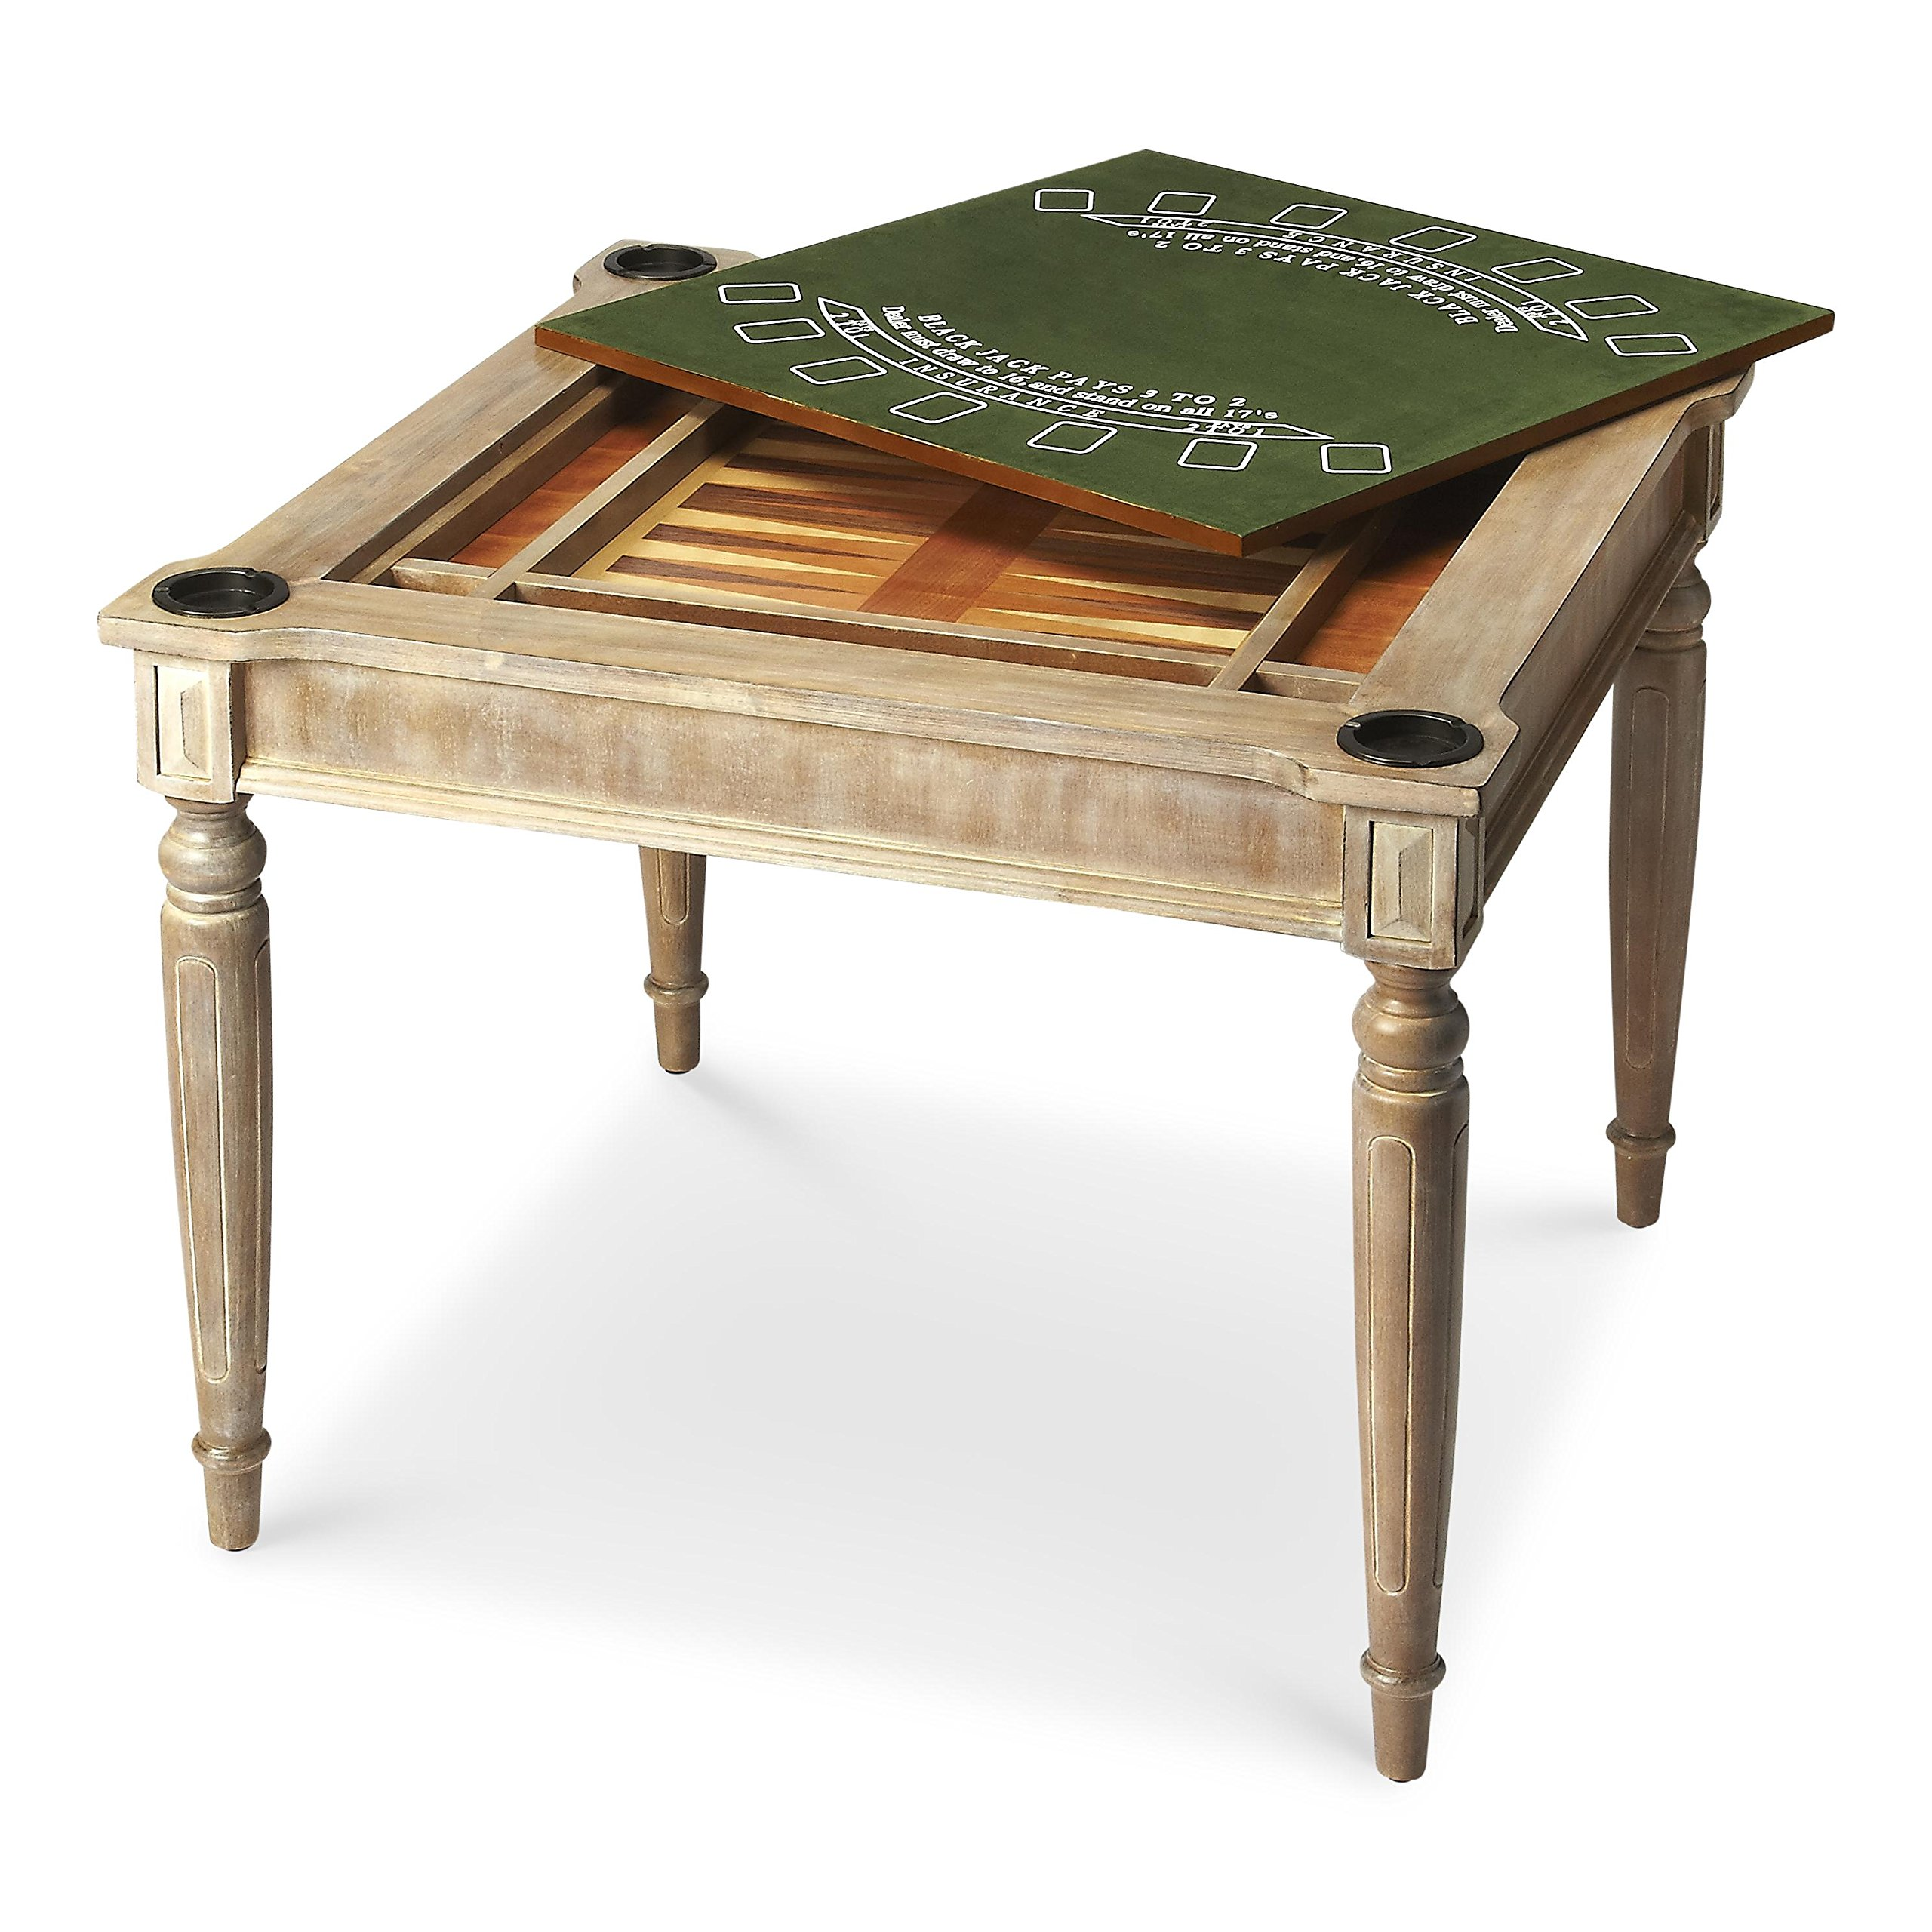 BUTLER VINCENT DRIFTWOOD MULTI-GAME CARD TABLE by Butler specality company